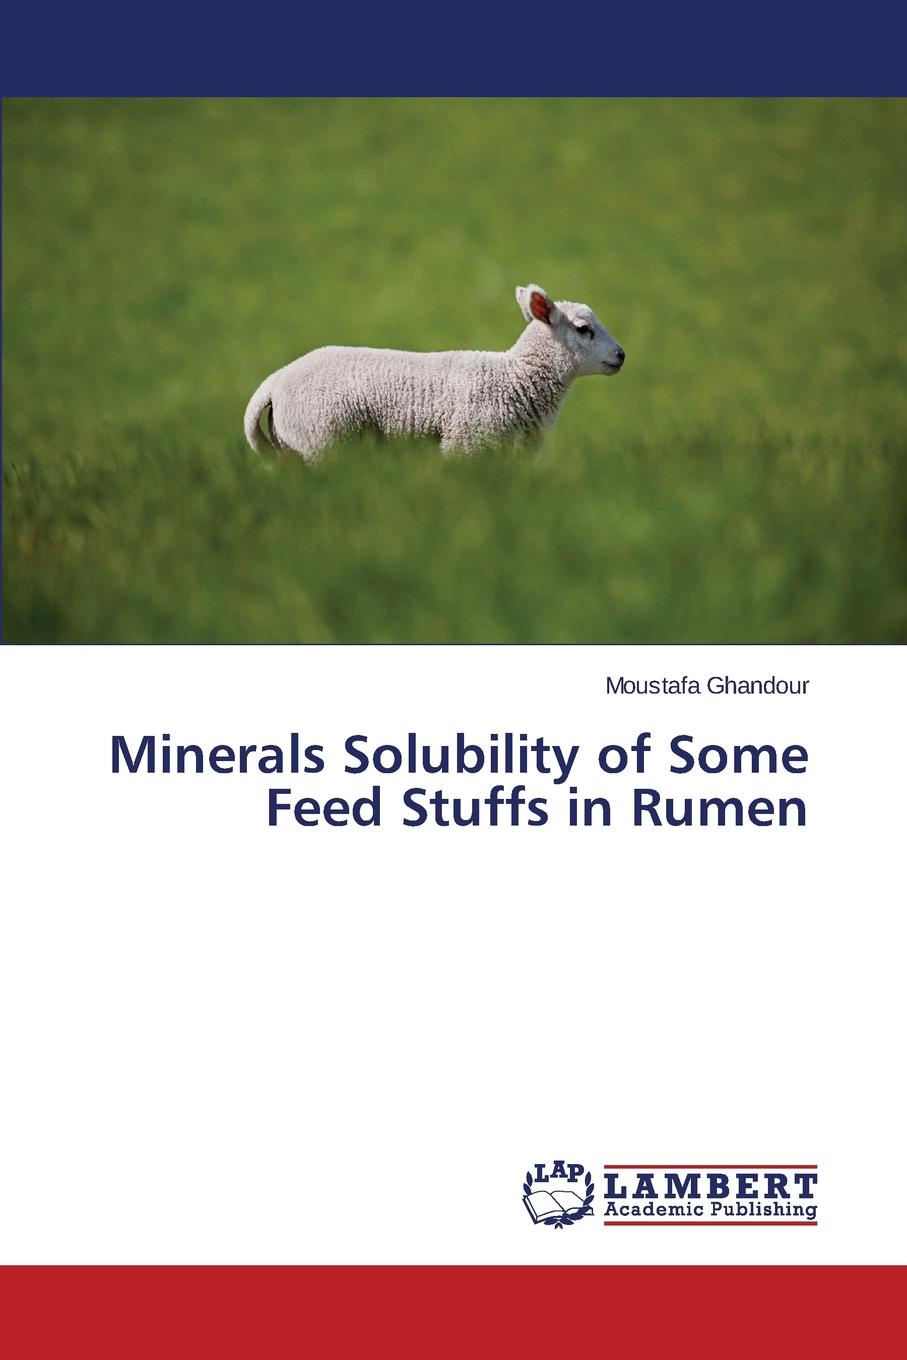 Ghandour Moustafa Minerals Solubility of Some Feed Stuffs in Rumen bioavailability and solubility equilibria of heavy metals in soils